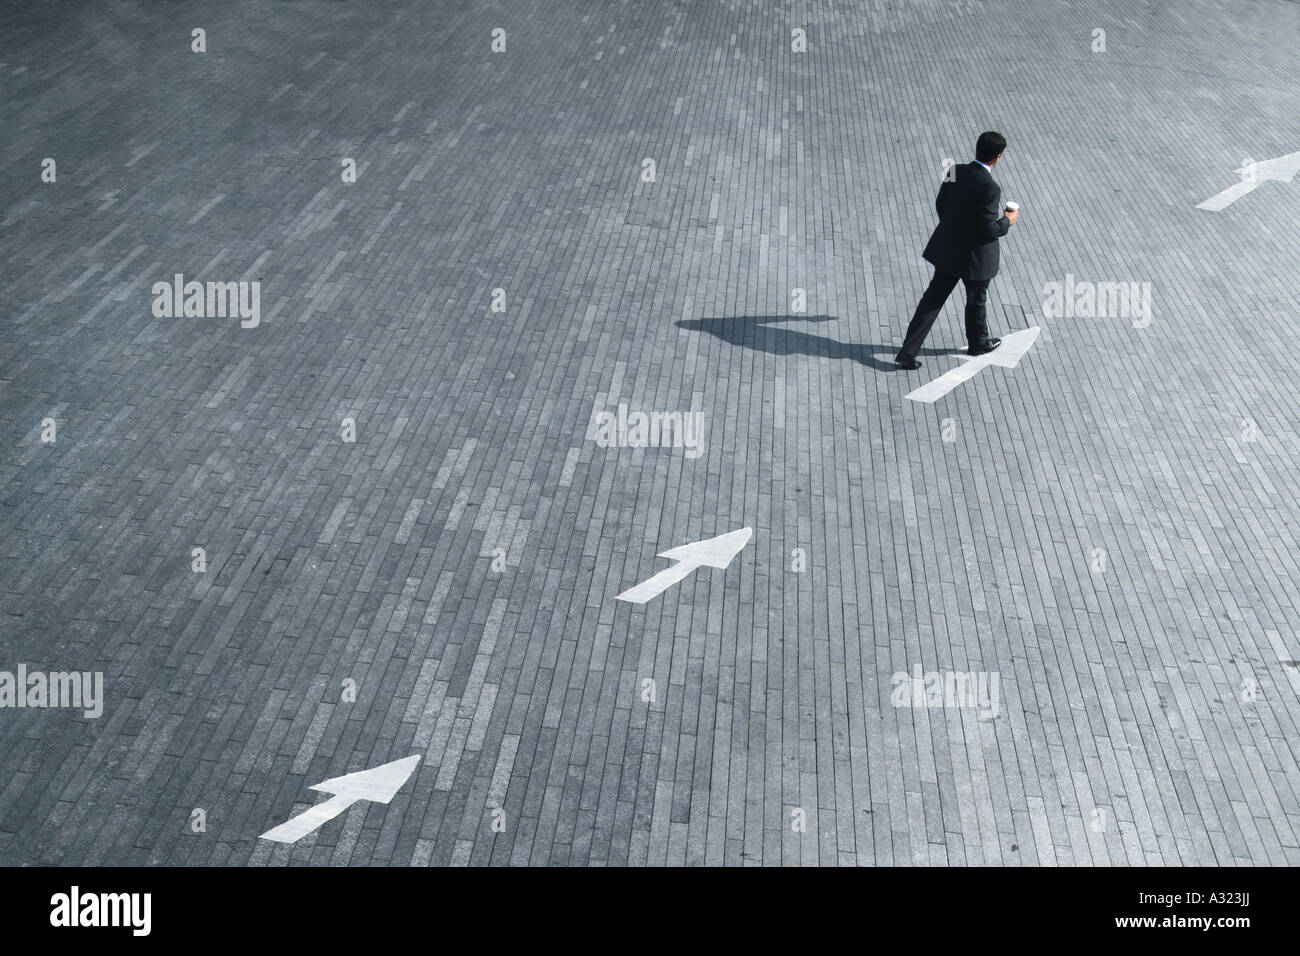 business concept of a man following the direction of the arrows - Stock Image